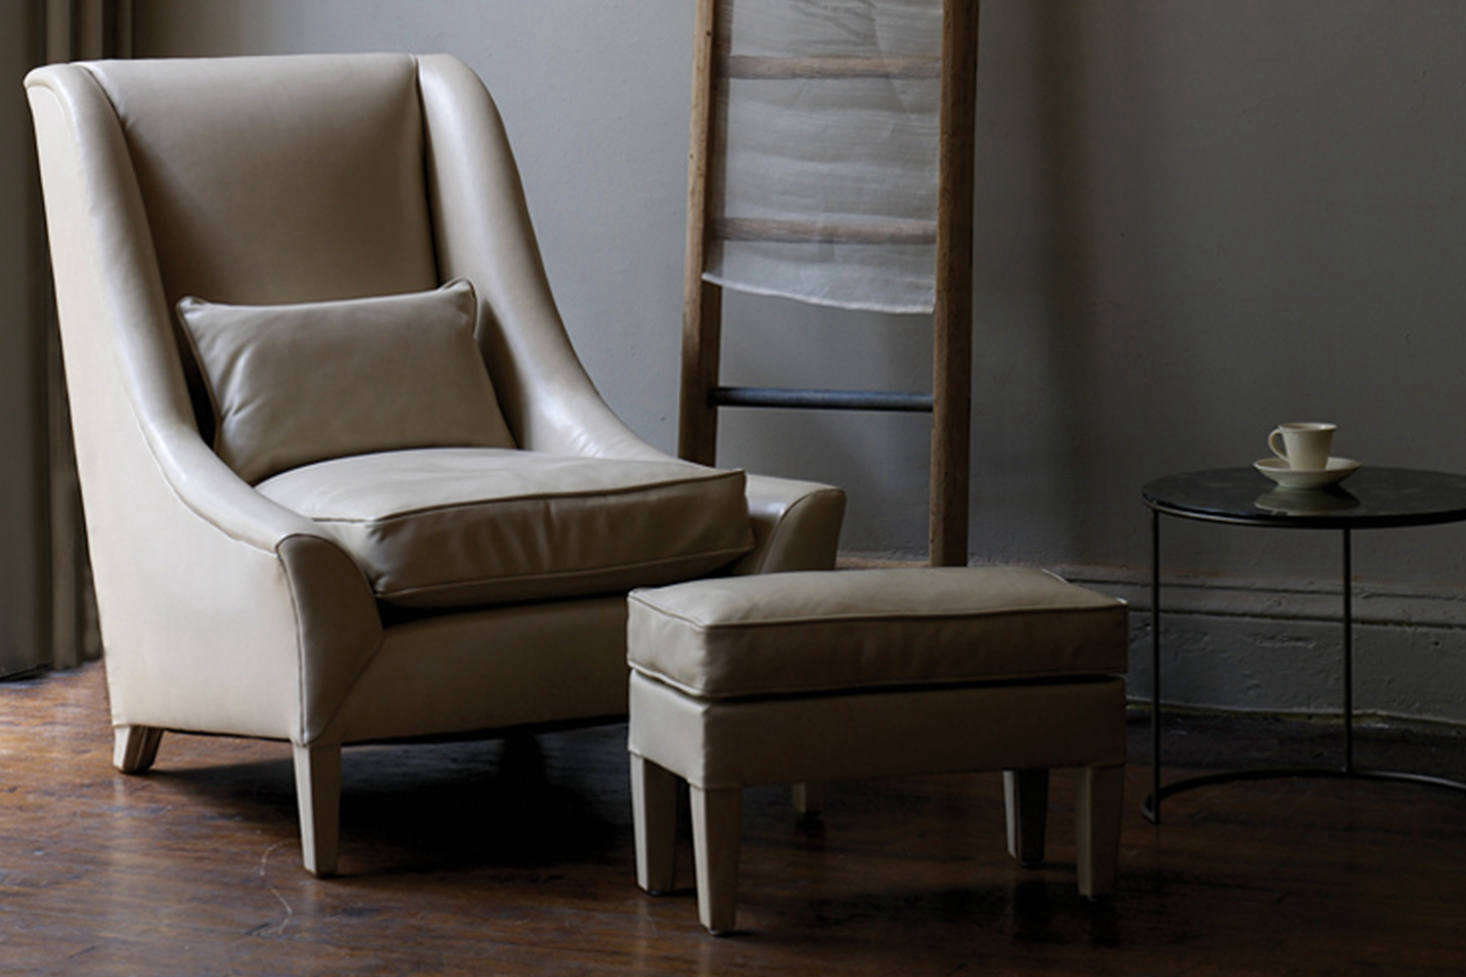 The Ochre Snooze Chair is made with a traditionally upholstered beech frame, double cone springs, and cushions with piping. Contact Ochre for more information.